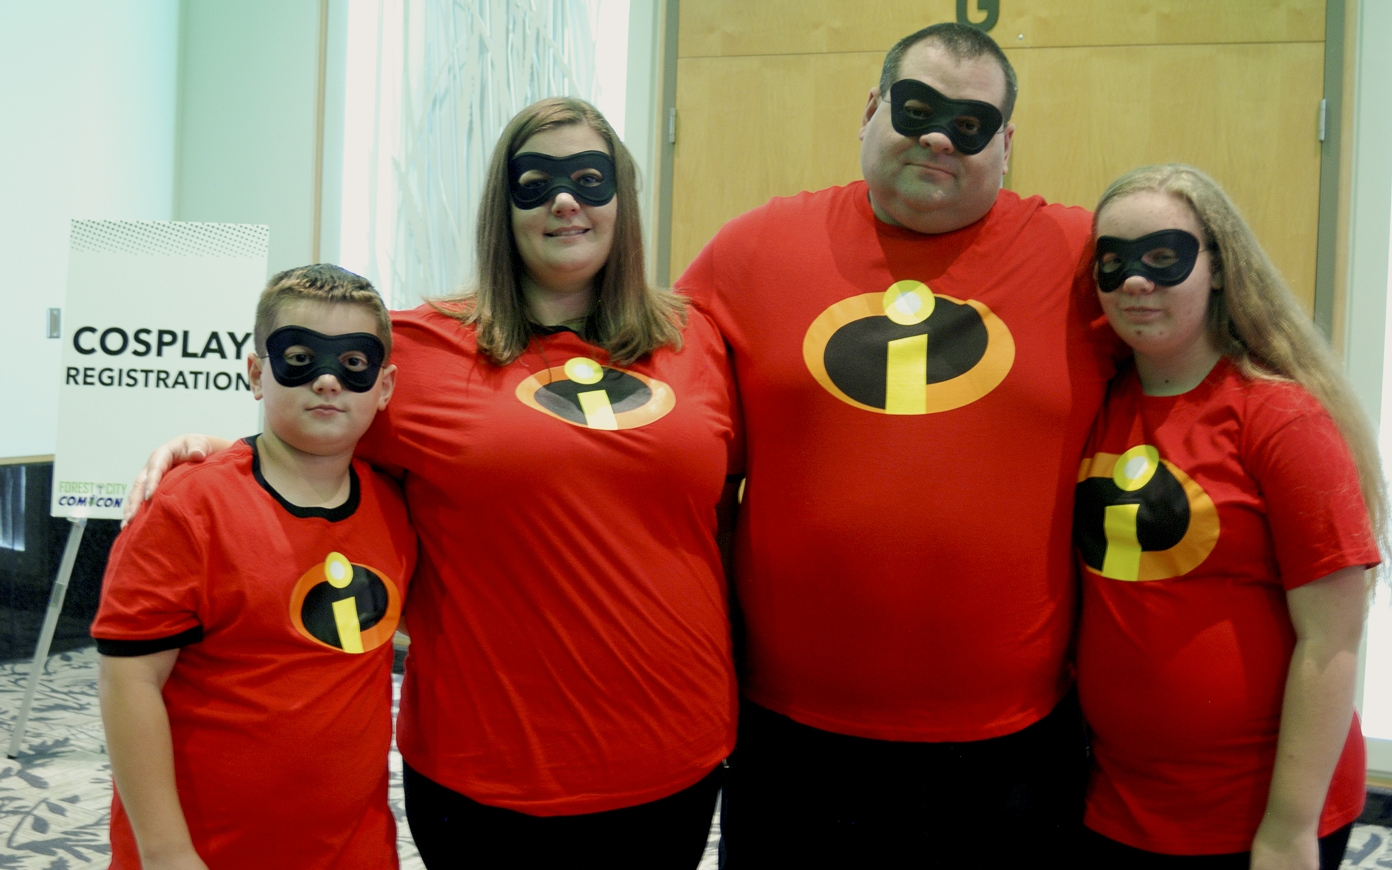 Forest City Comicon 2018. Gavin, Christine, Jamie and Kennedy Sweetman cosplaying as The Incredible family at Forest City Comicon in London, Ontario.